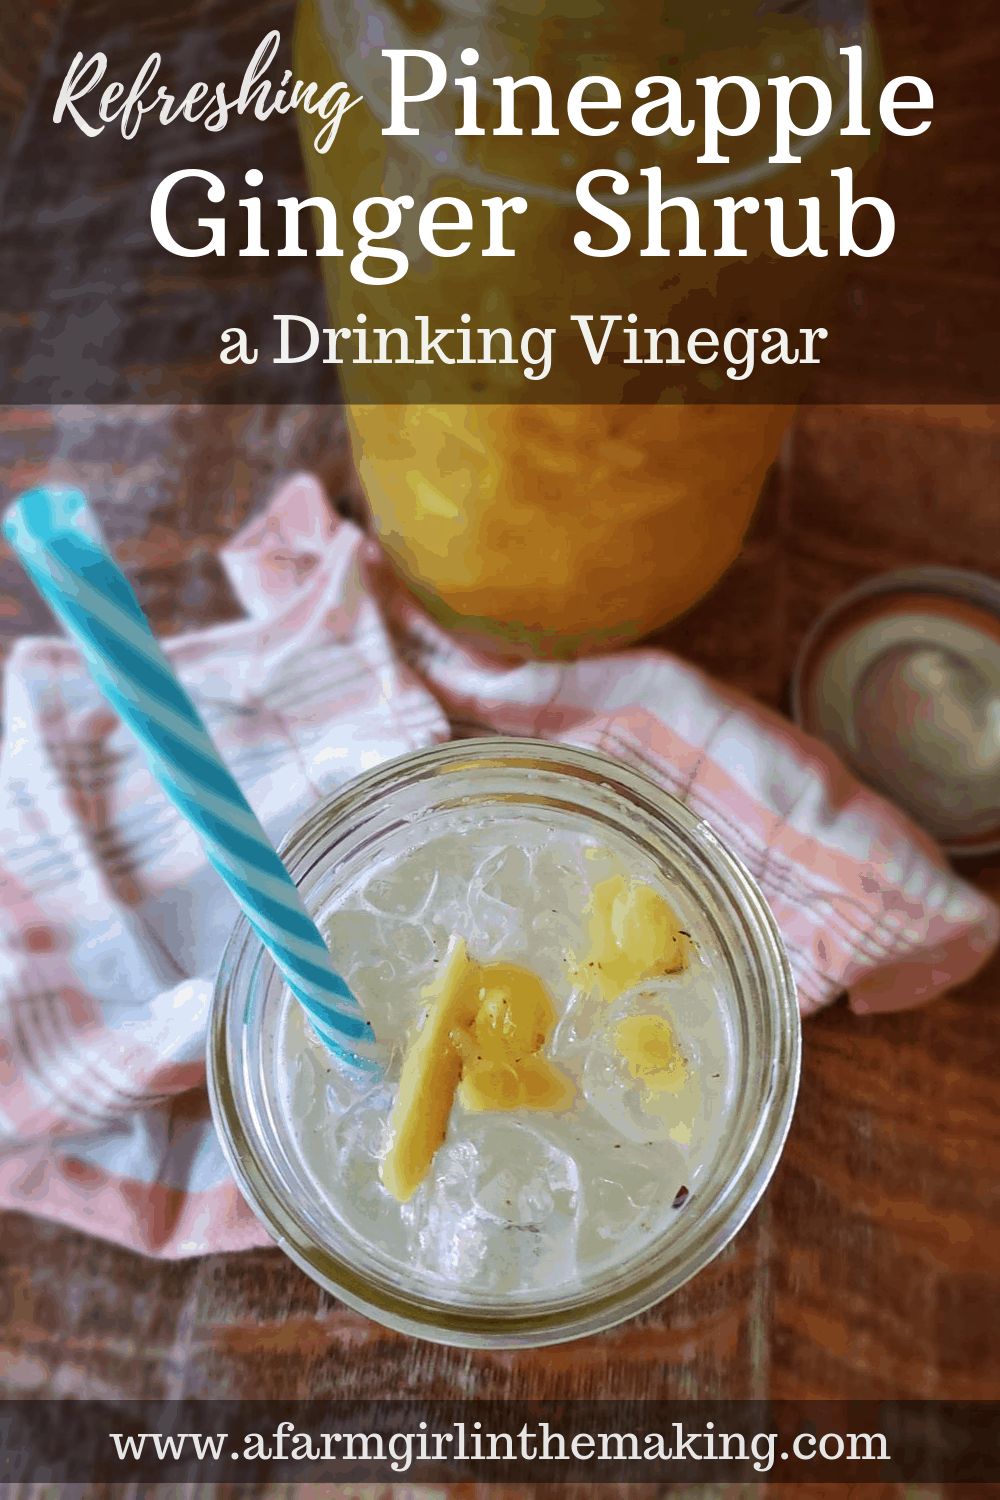 Pinapple ginger shrub